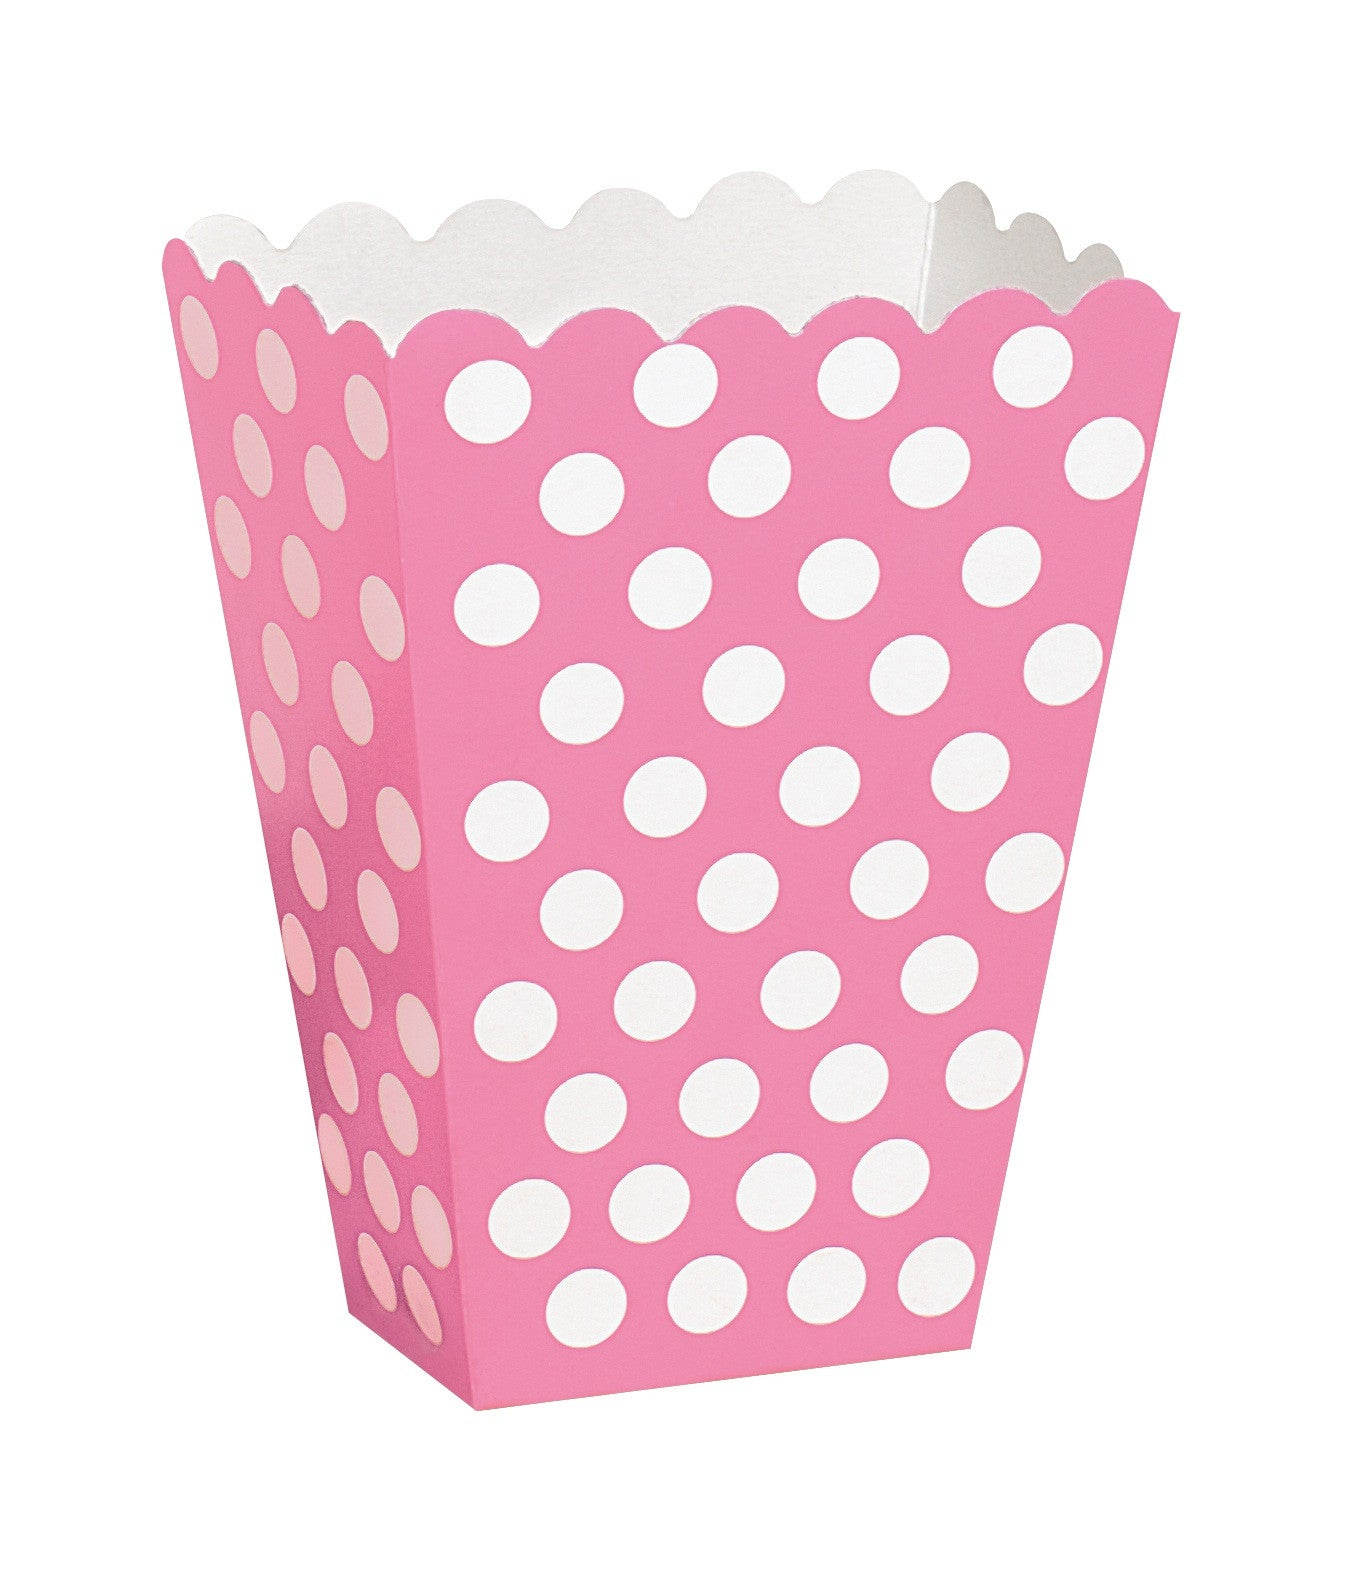 Pink Polka Dot Treat Boxes - CLEARANCE - Uk Baby Shower Co ltd